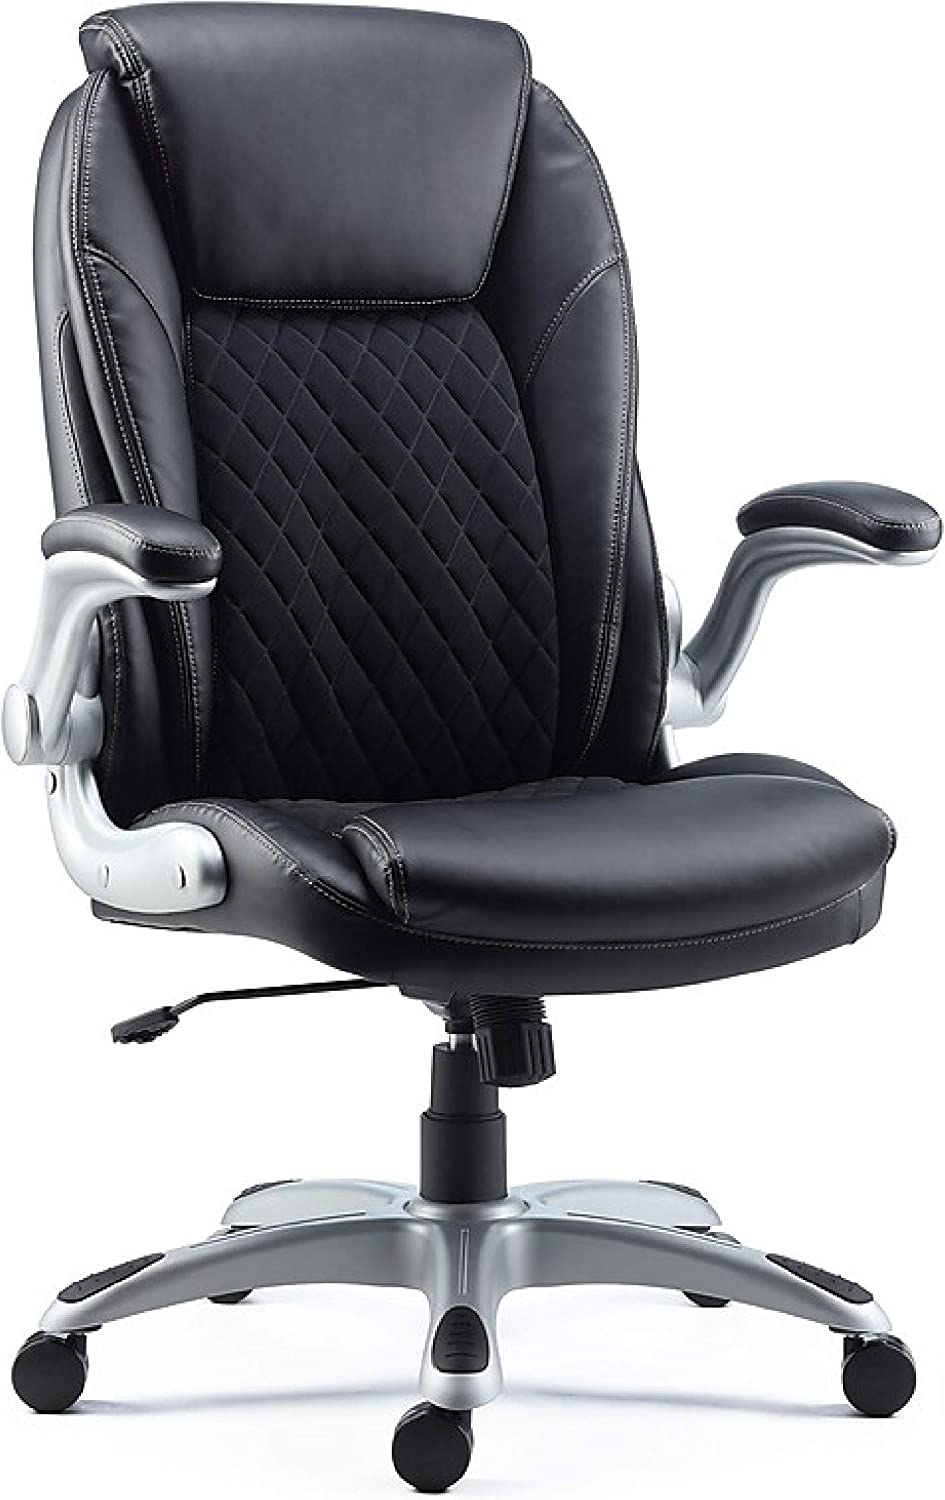 Staples Sorina Bonded Leather Chair (Black, Sold as 39 Each) - Adjustable  Office Chair with Plush Padding, Provides Lumbar, Arm and Head Support,